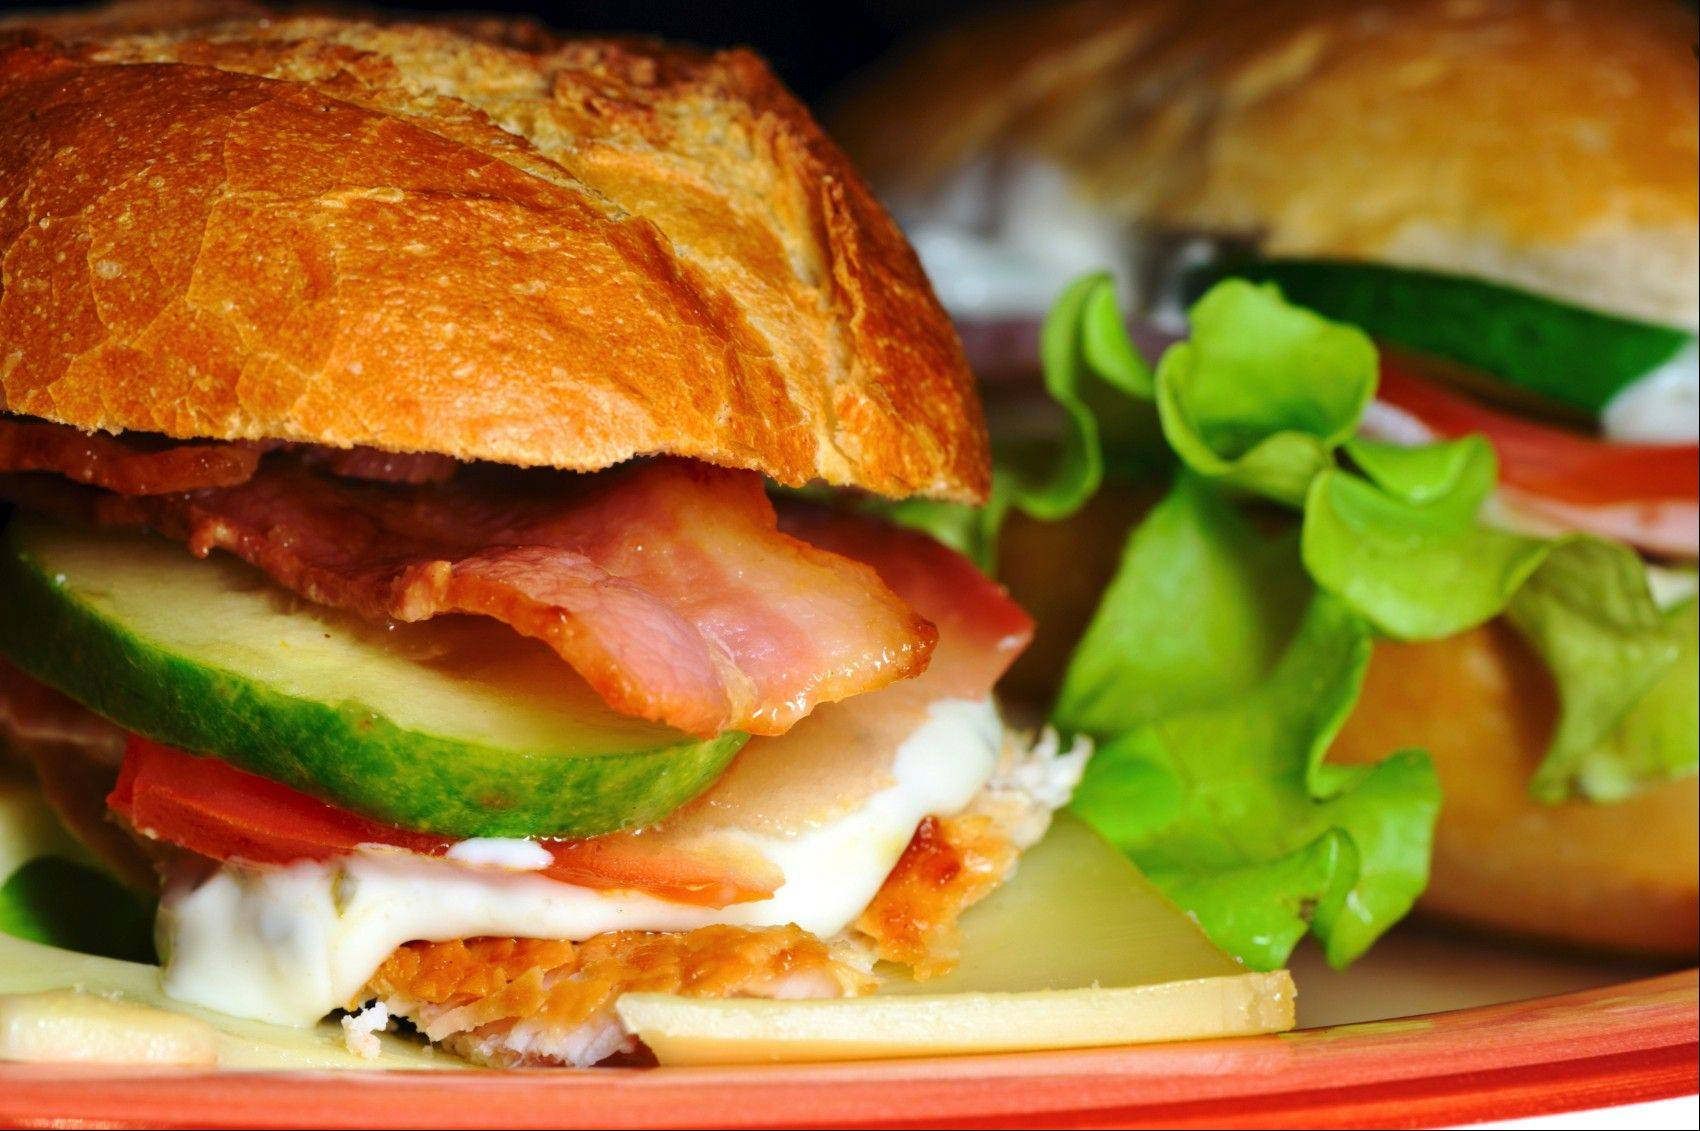 This sandwich plus a drink plus dessert equals $9 at Artisan Table during lunch.